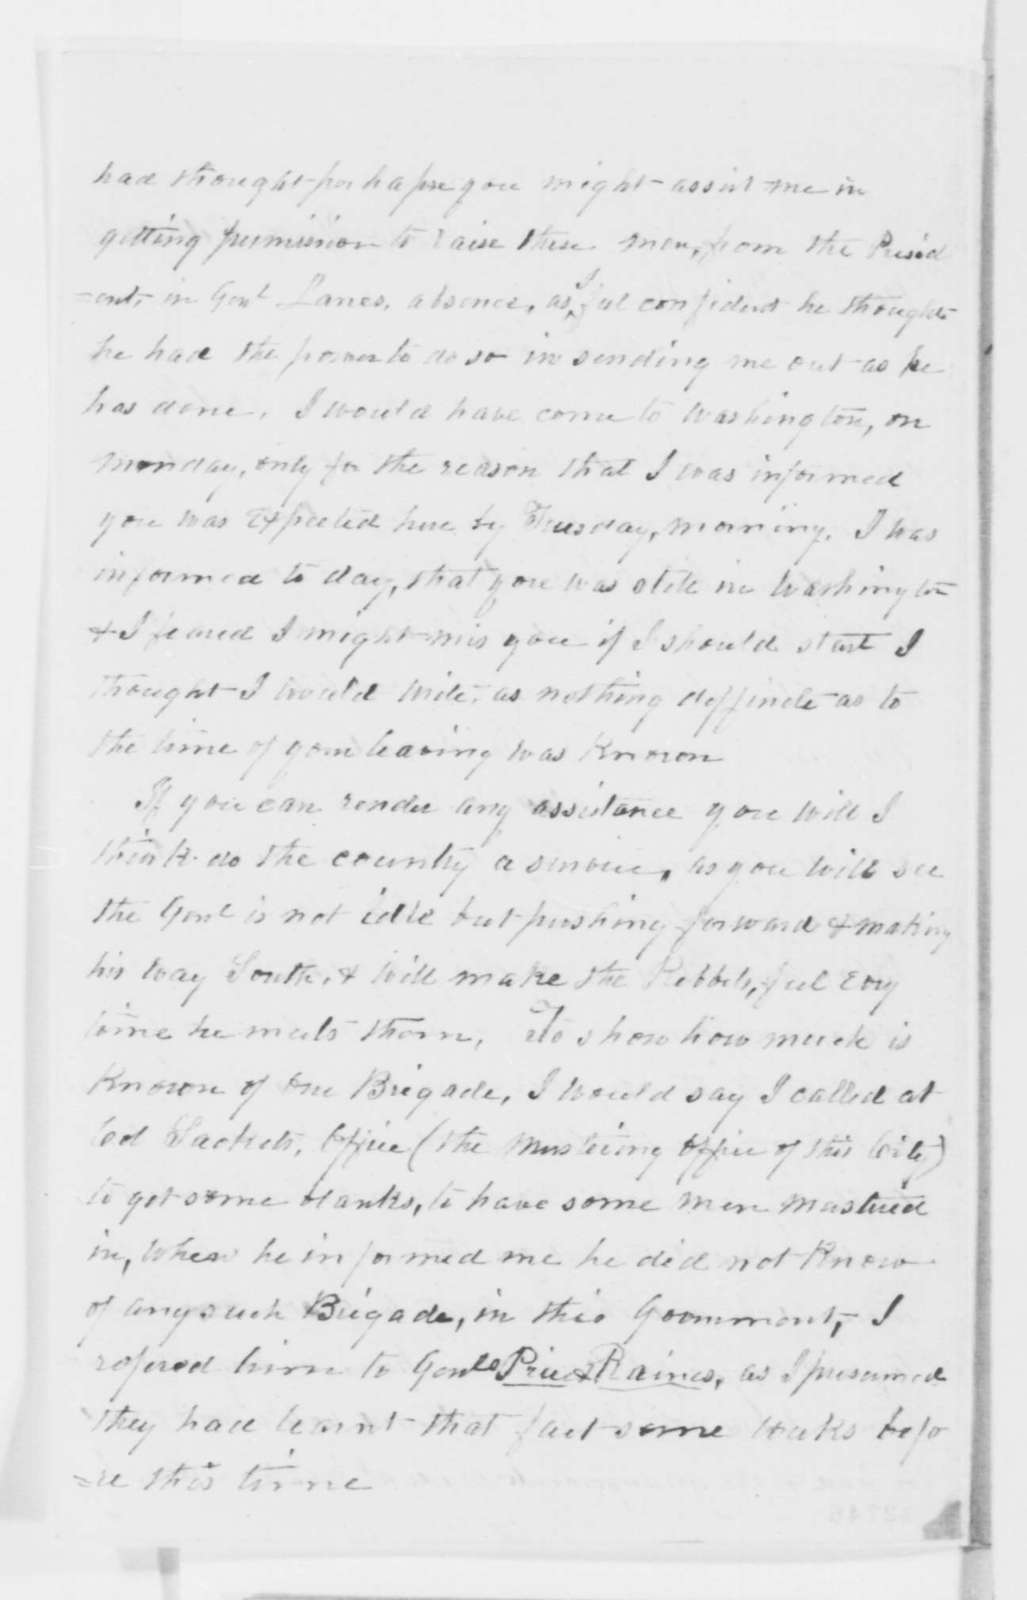 Ebenezer White to Lyman Trumbull, Wednesday, October 30, 1861  (Military affairs; endorsed by Abraham Lincoln and endorsed by John Hay, Nov. 6, 1861)